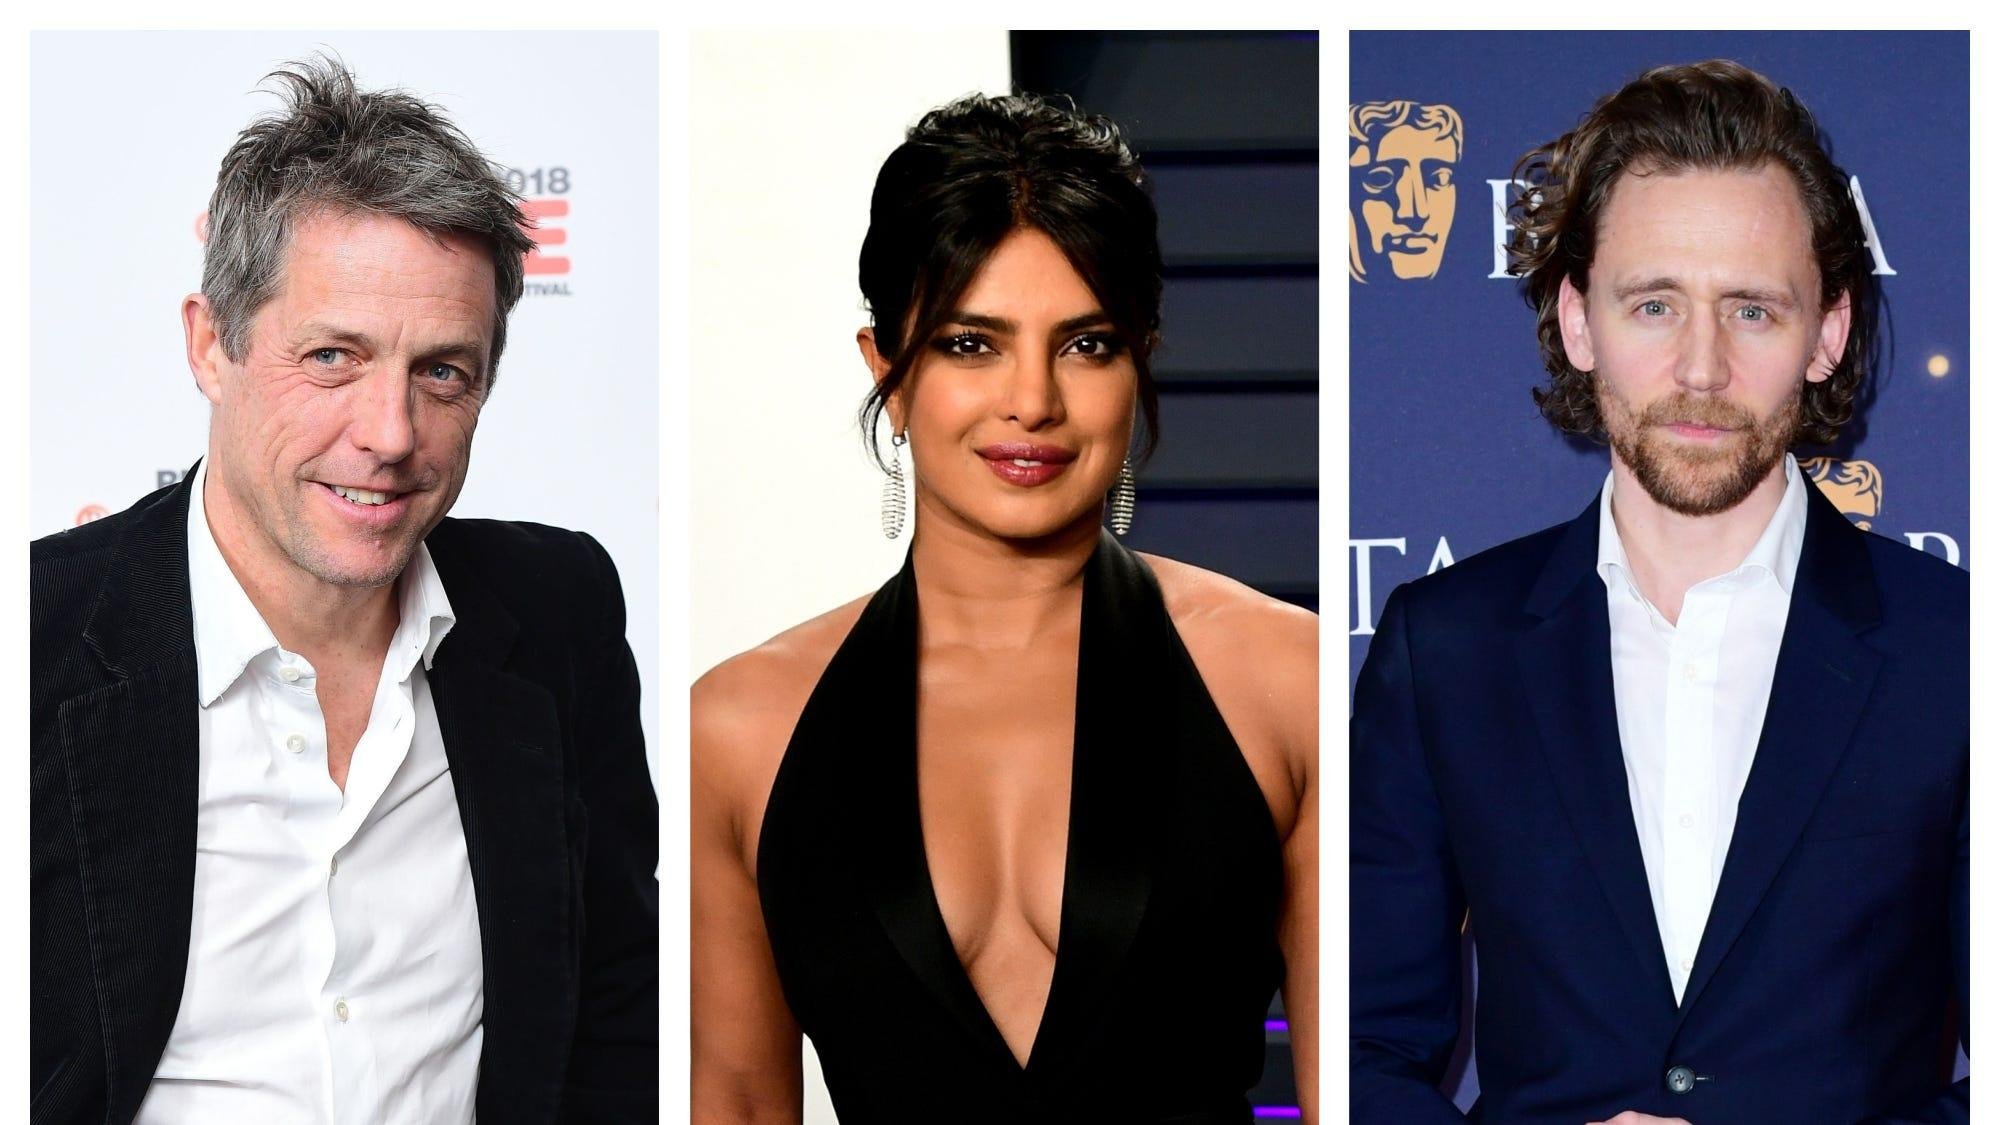 Hugh Grant, Priyanka Chopra Jonas and Tom Hiddleston among Bafta presenters